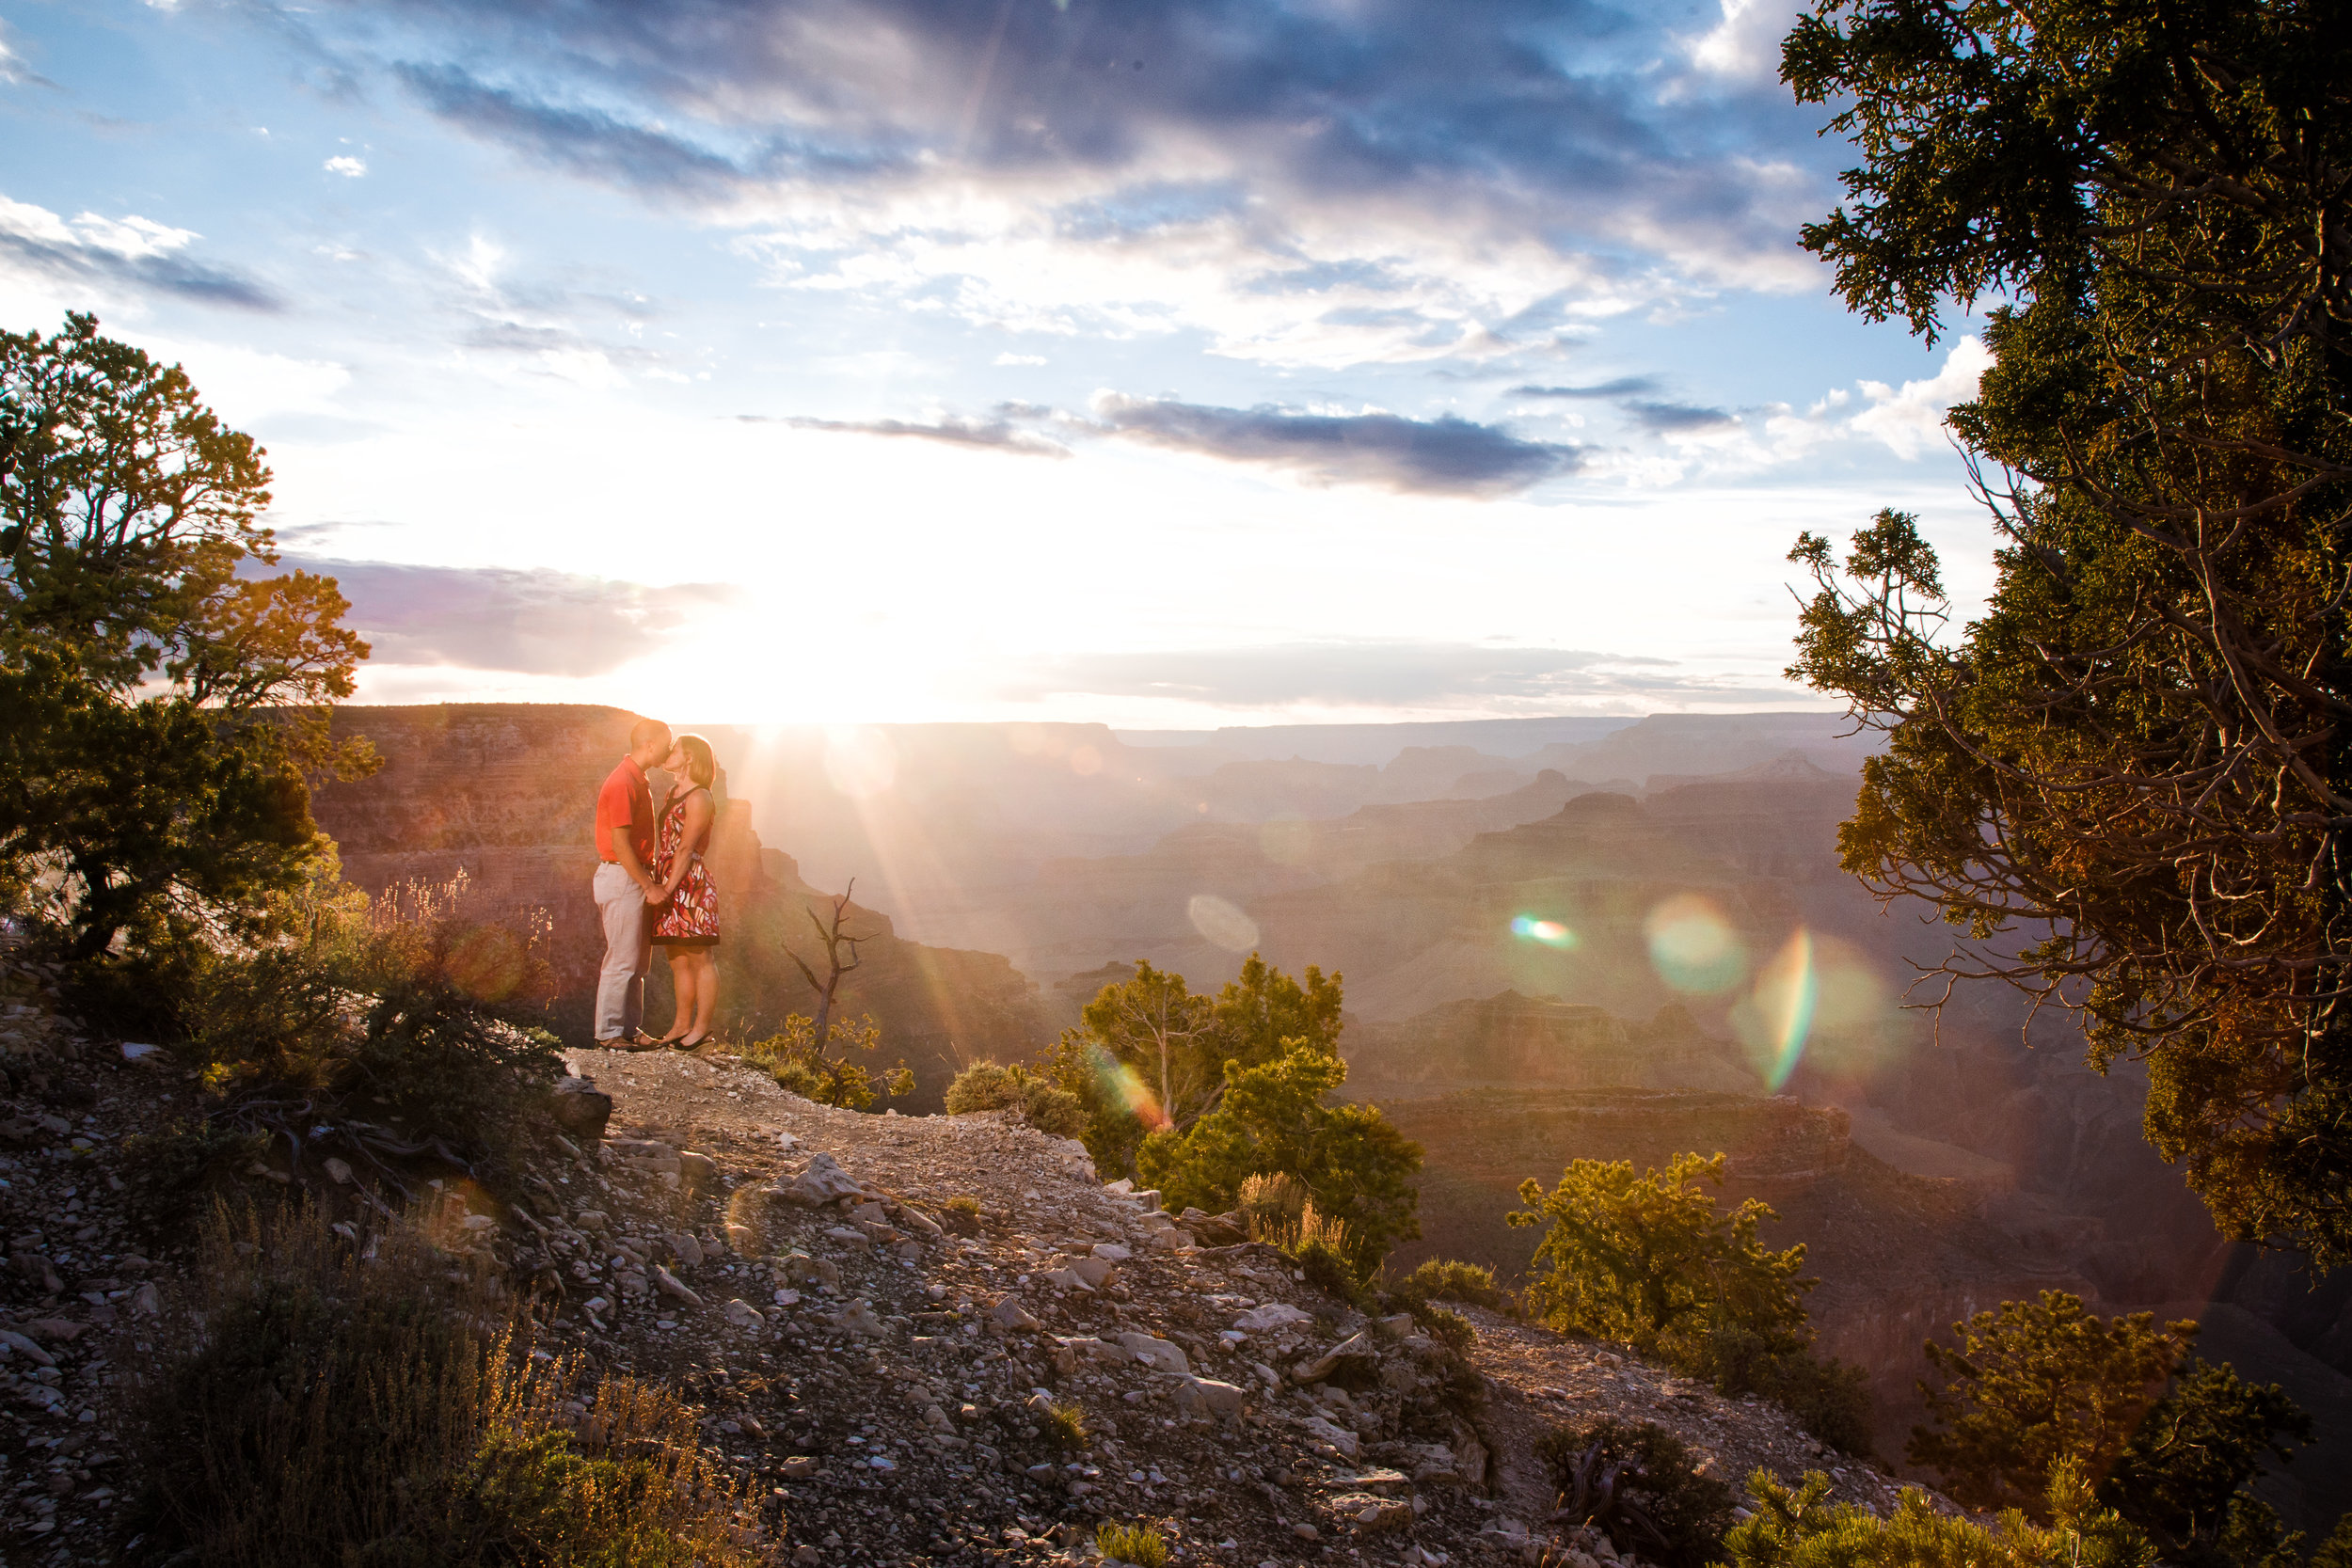 Exploding light. Grand Canyon comes alive.